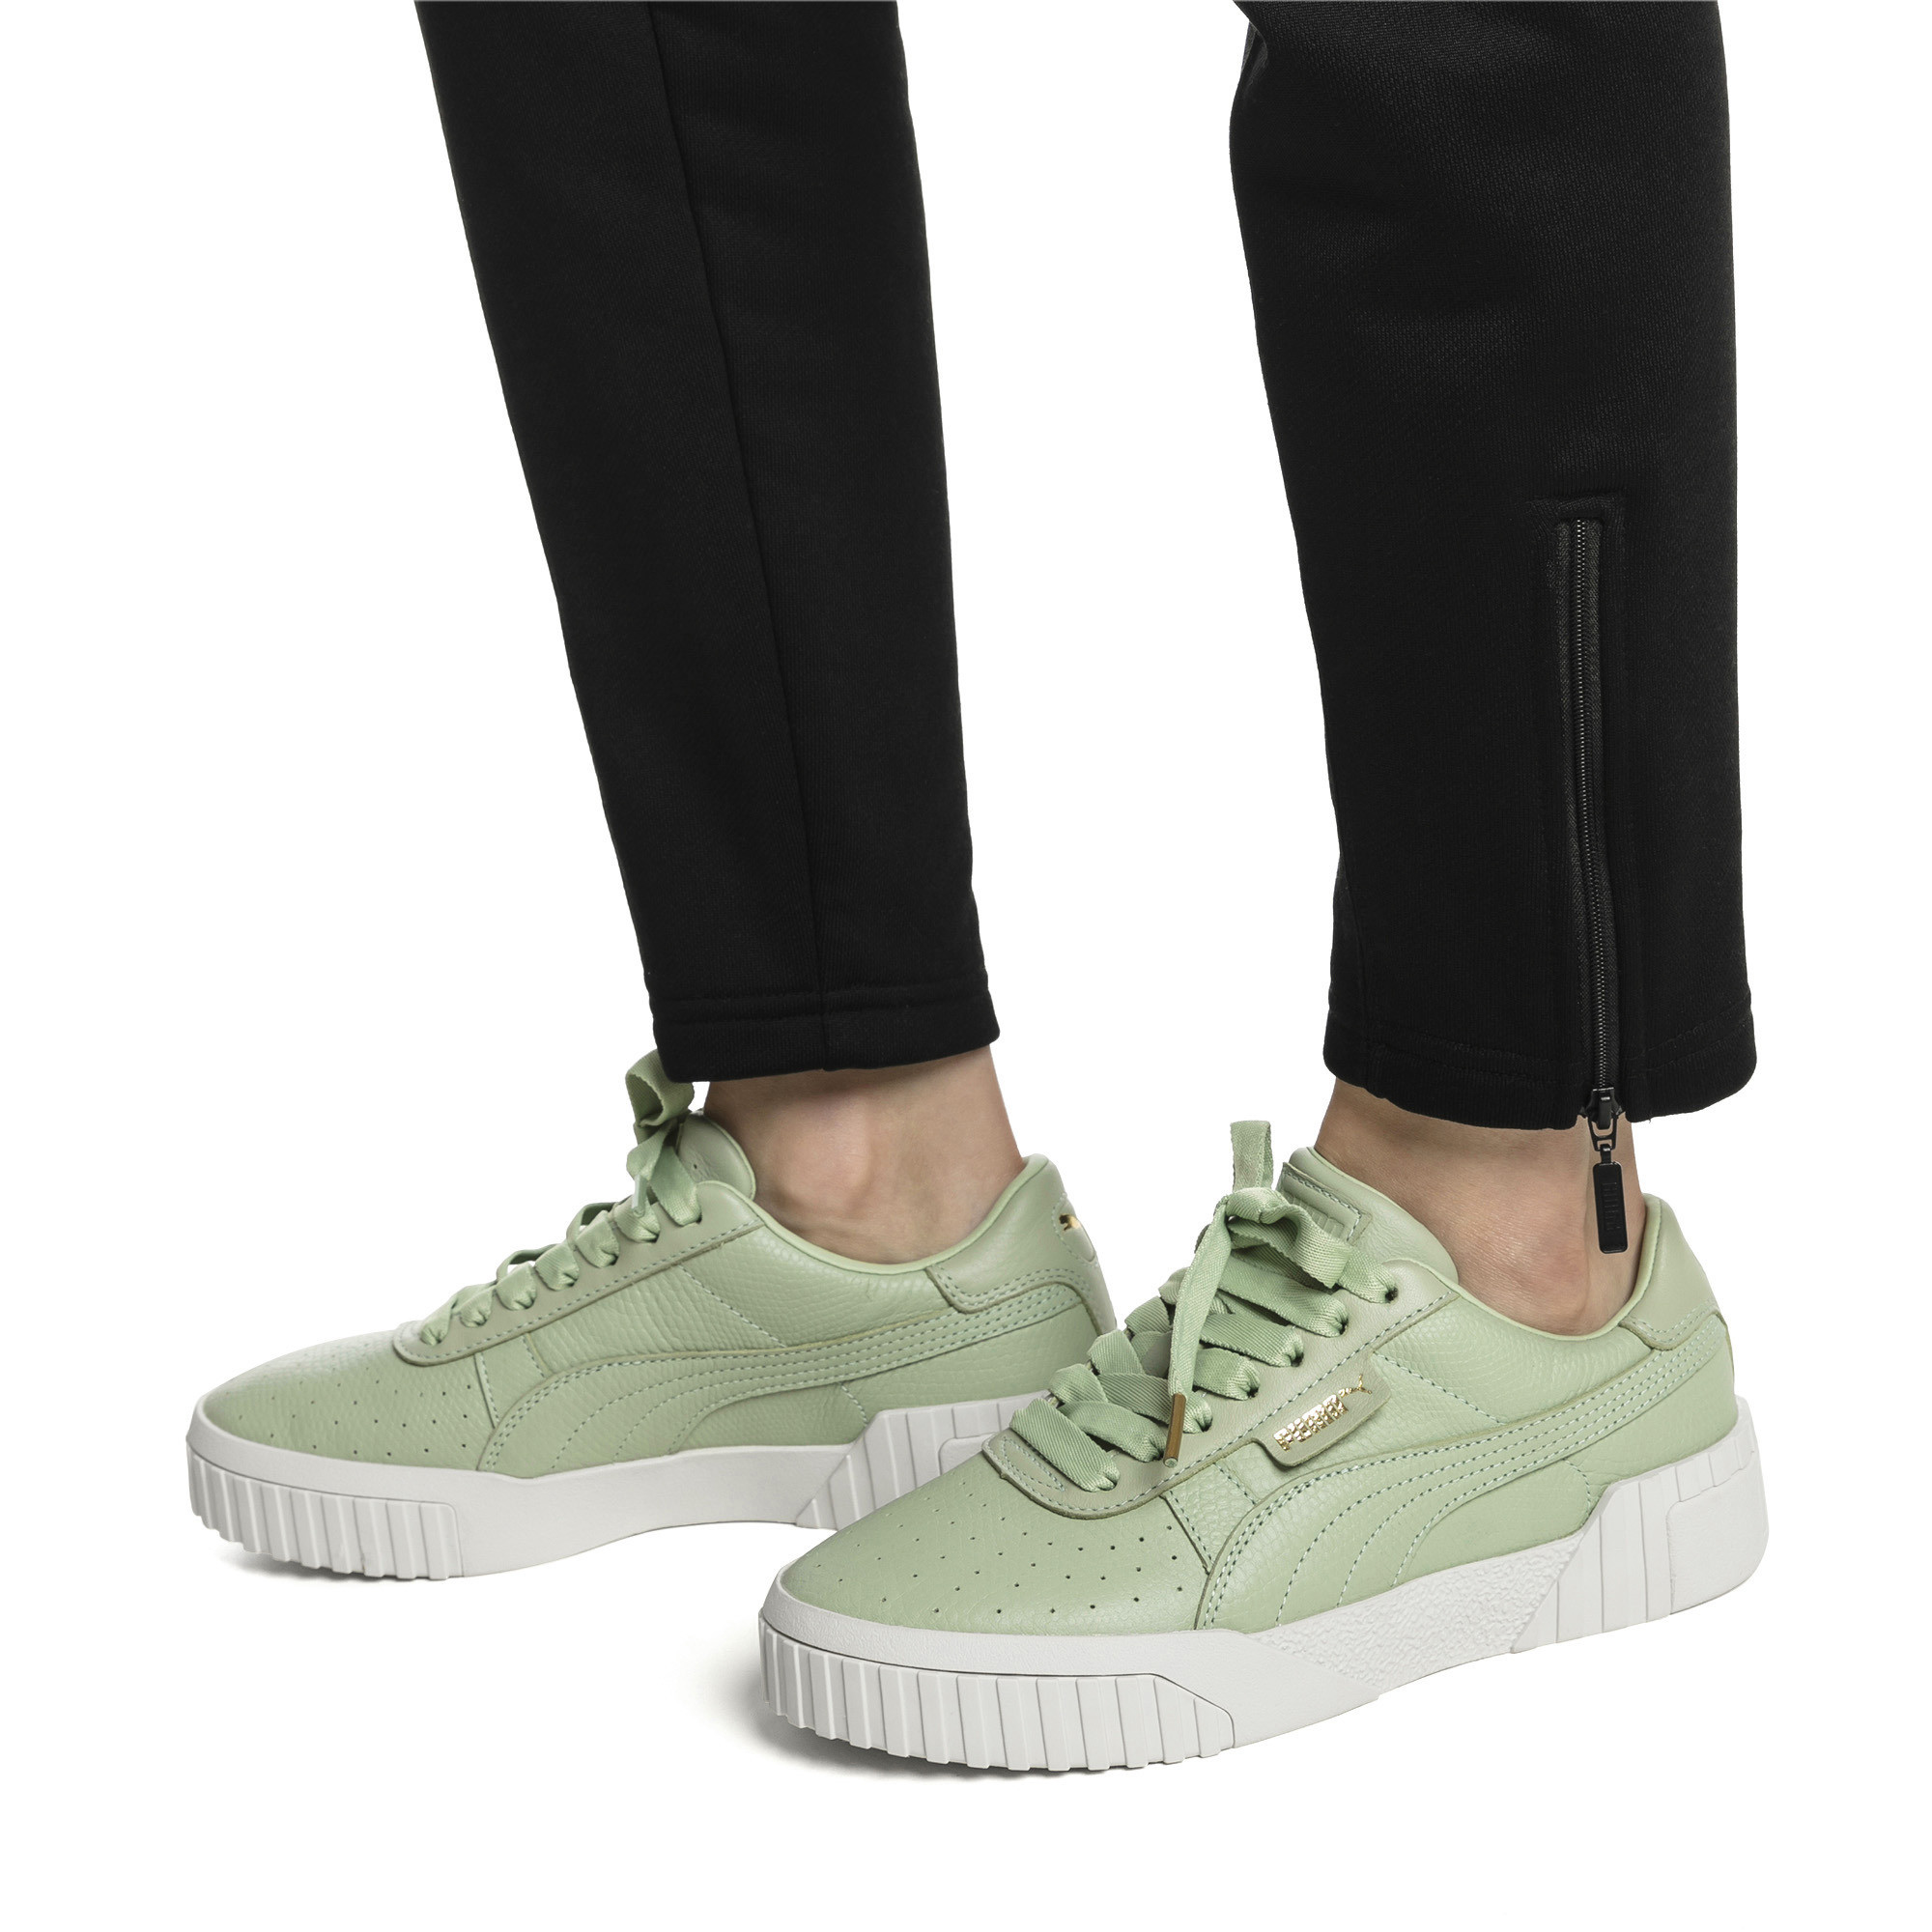 PUMA-Cali-Emboss-Women-039-s-Sneakers-Women-Shoe-Evolution thumbnail 5